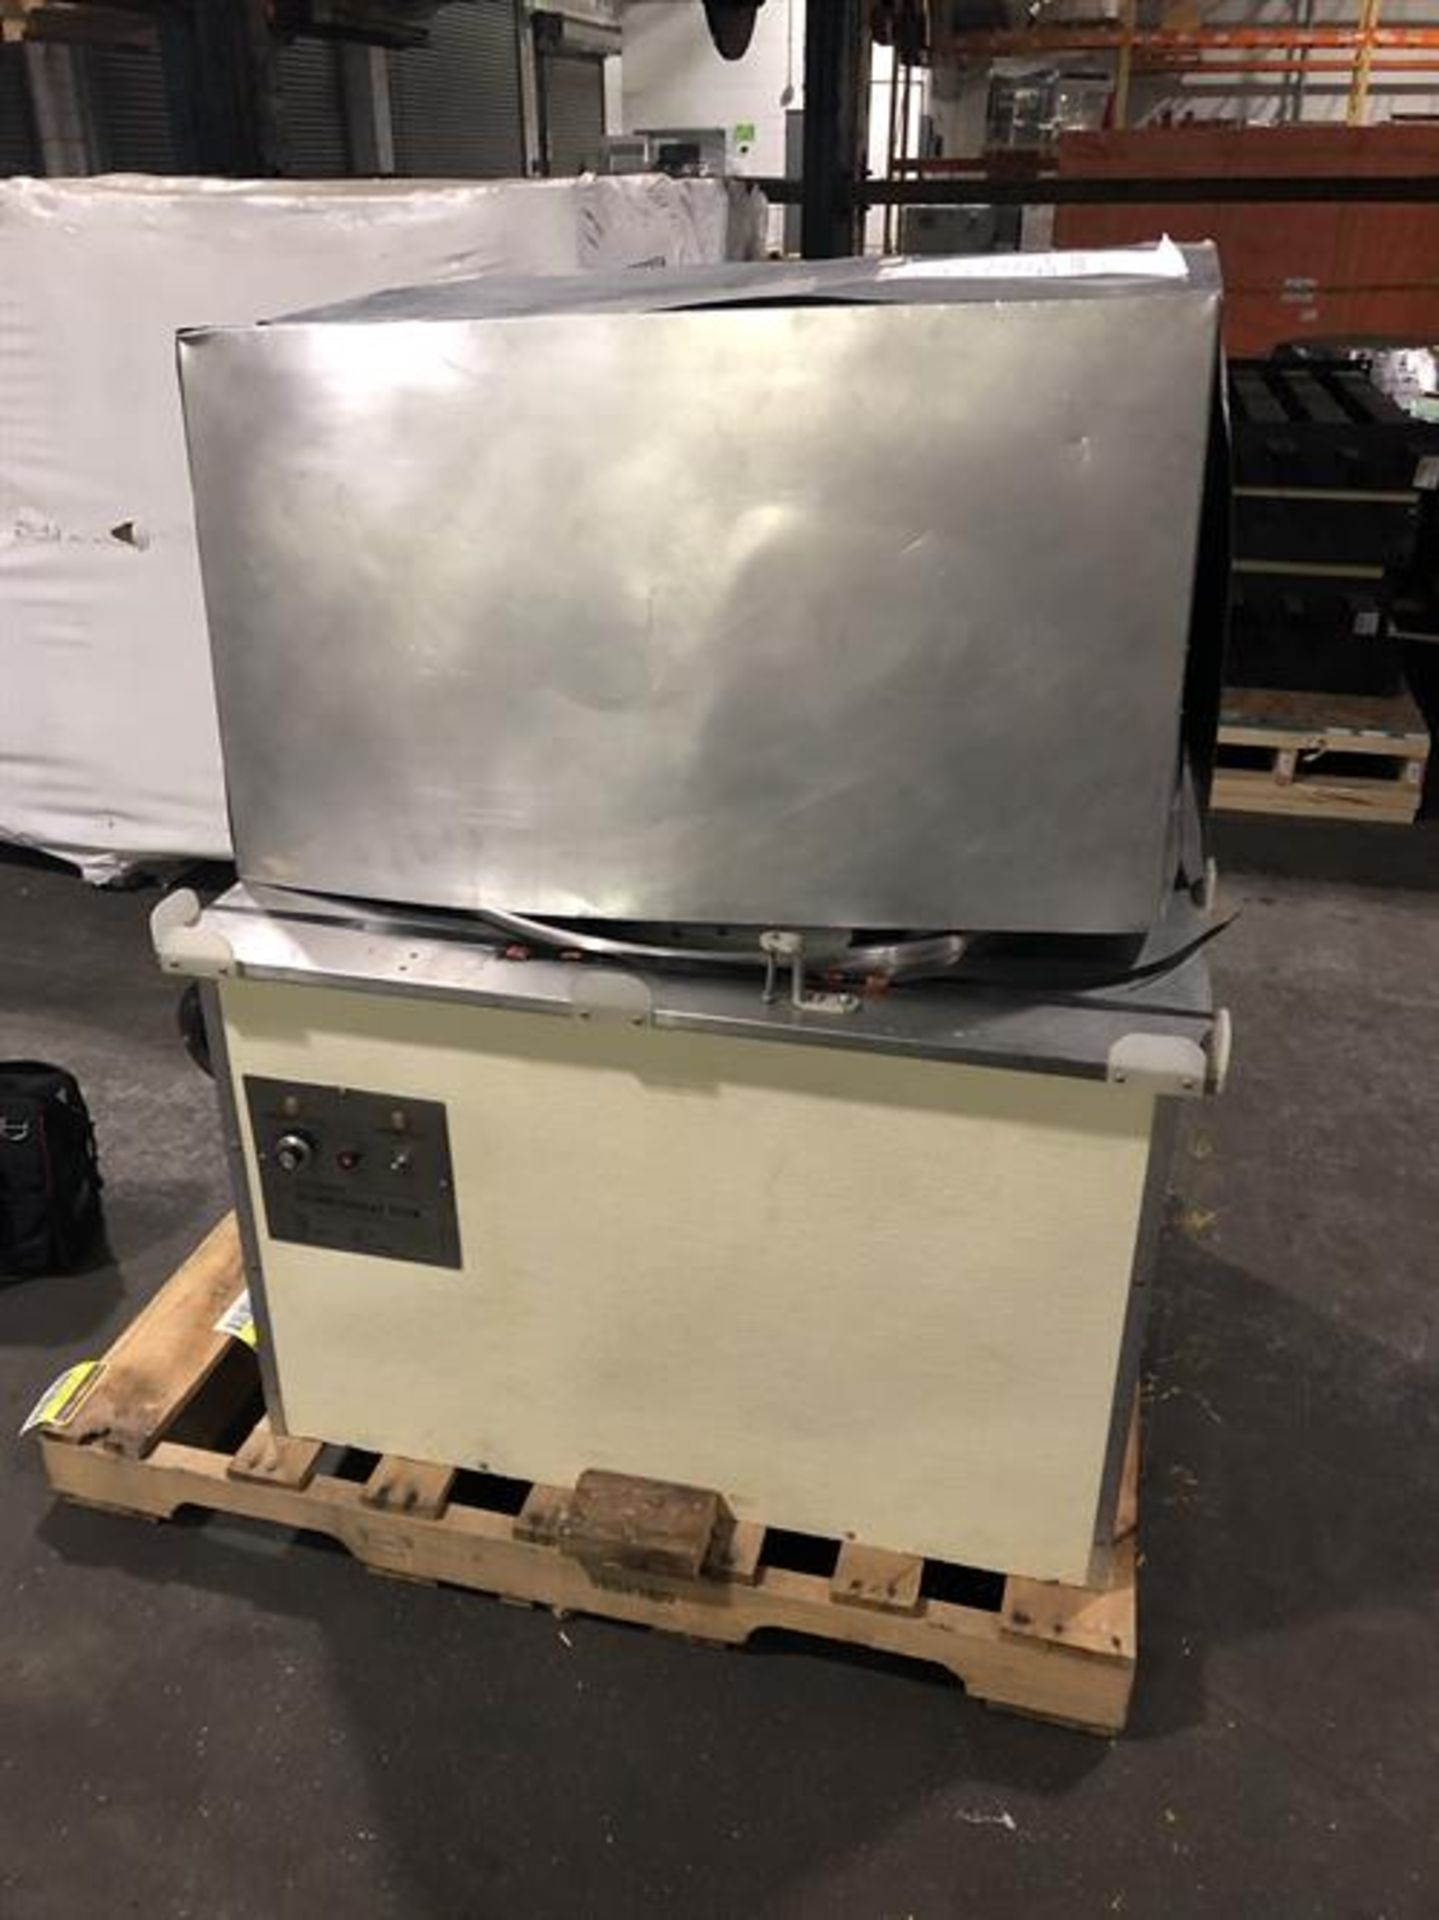 Hilliard 600lb/day Tempering Melter with Flood Mold Attachment - Electric heater and thermostat - - Image 2 of 6